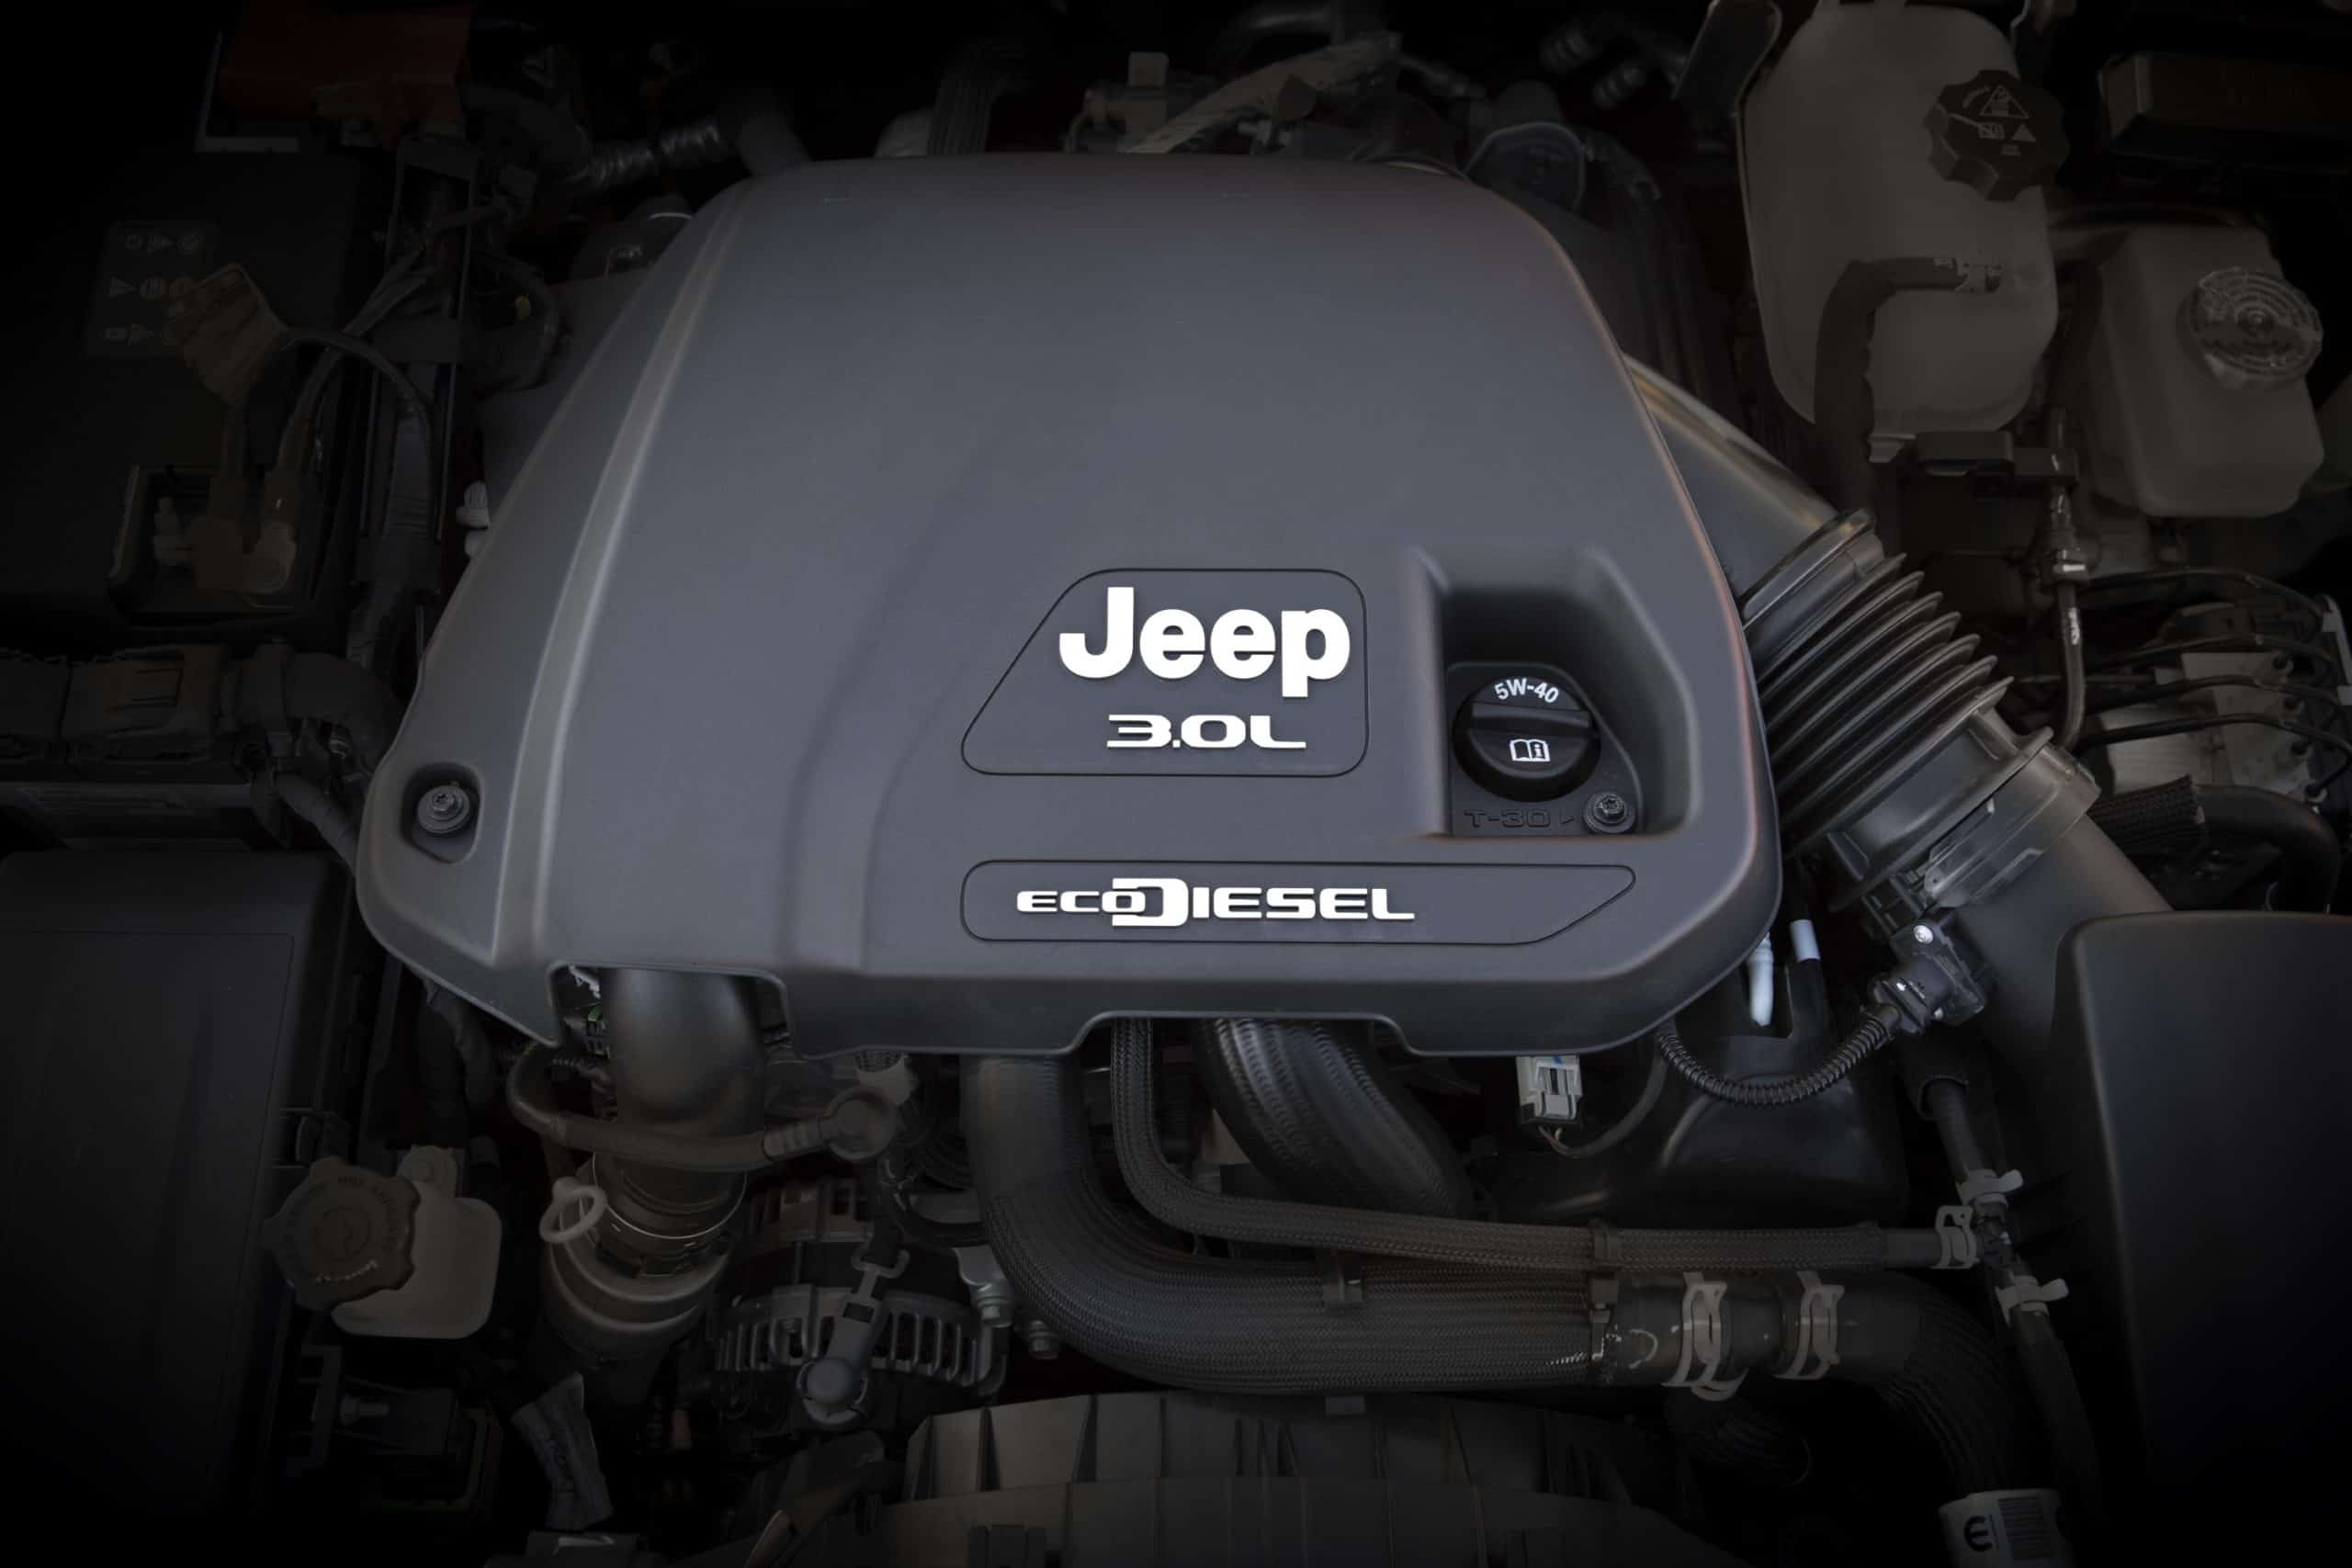 Jeep EcoDiesel engine in Wrangler